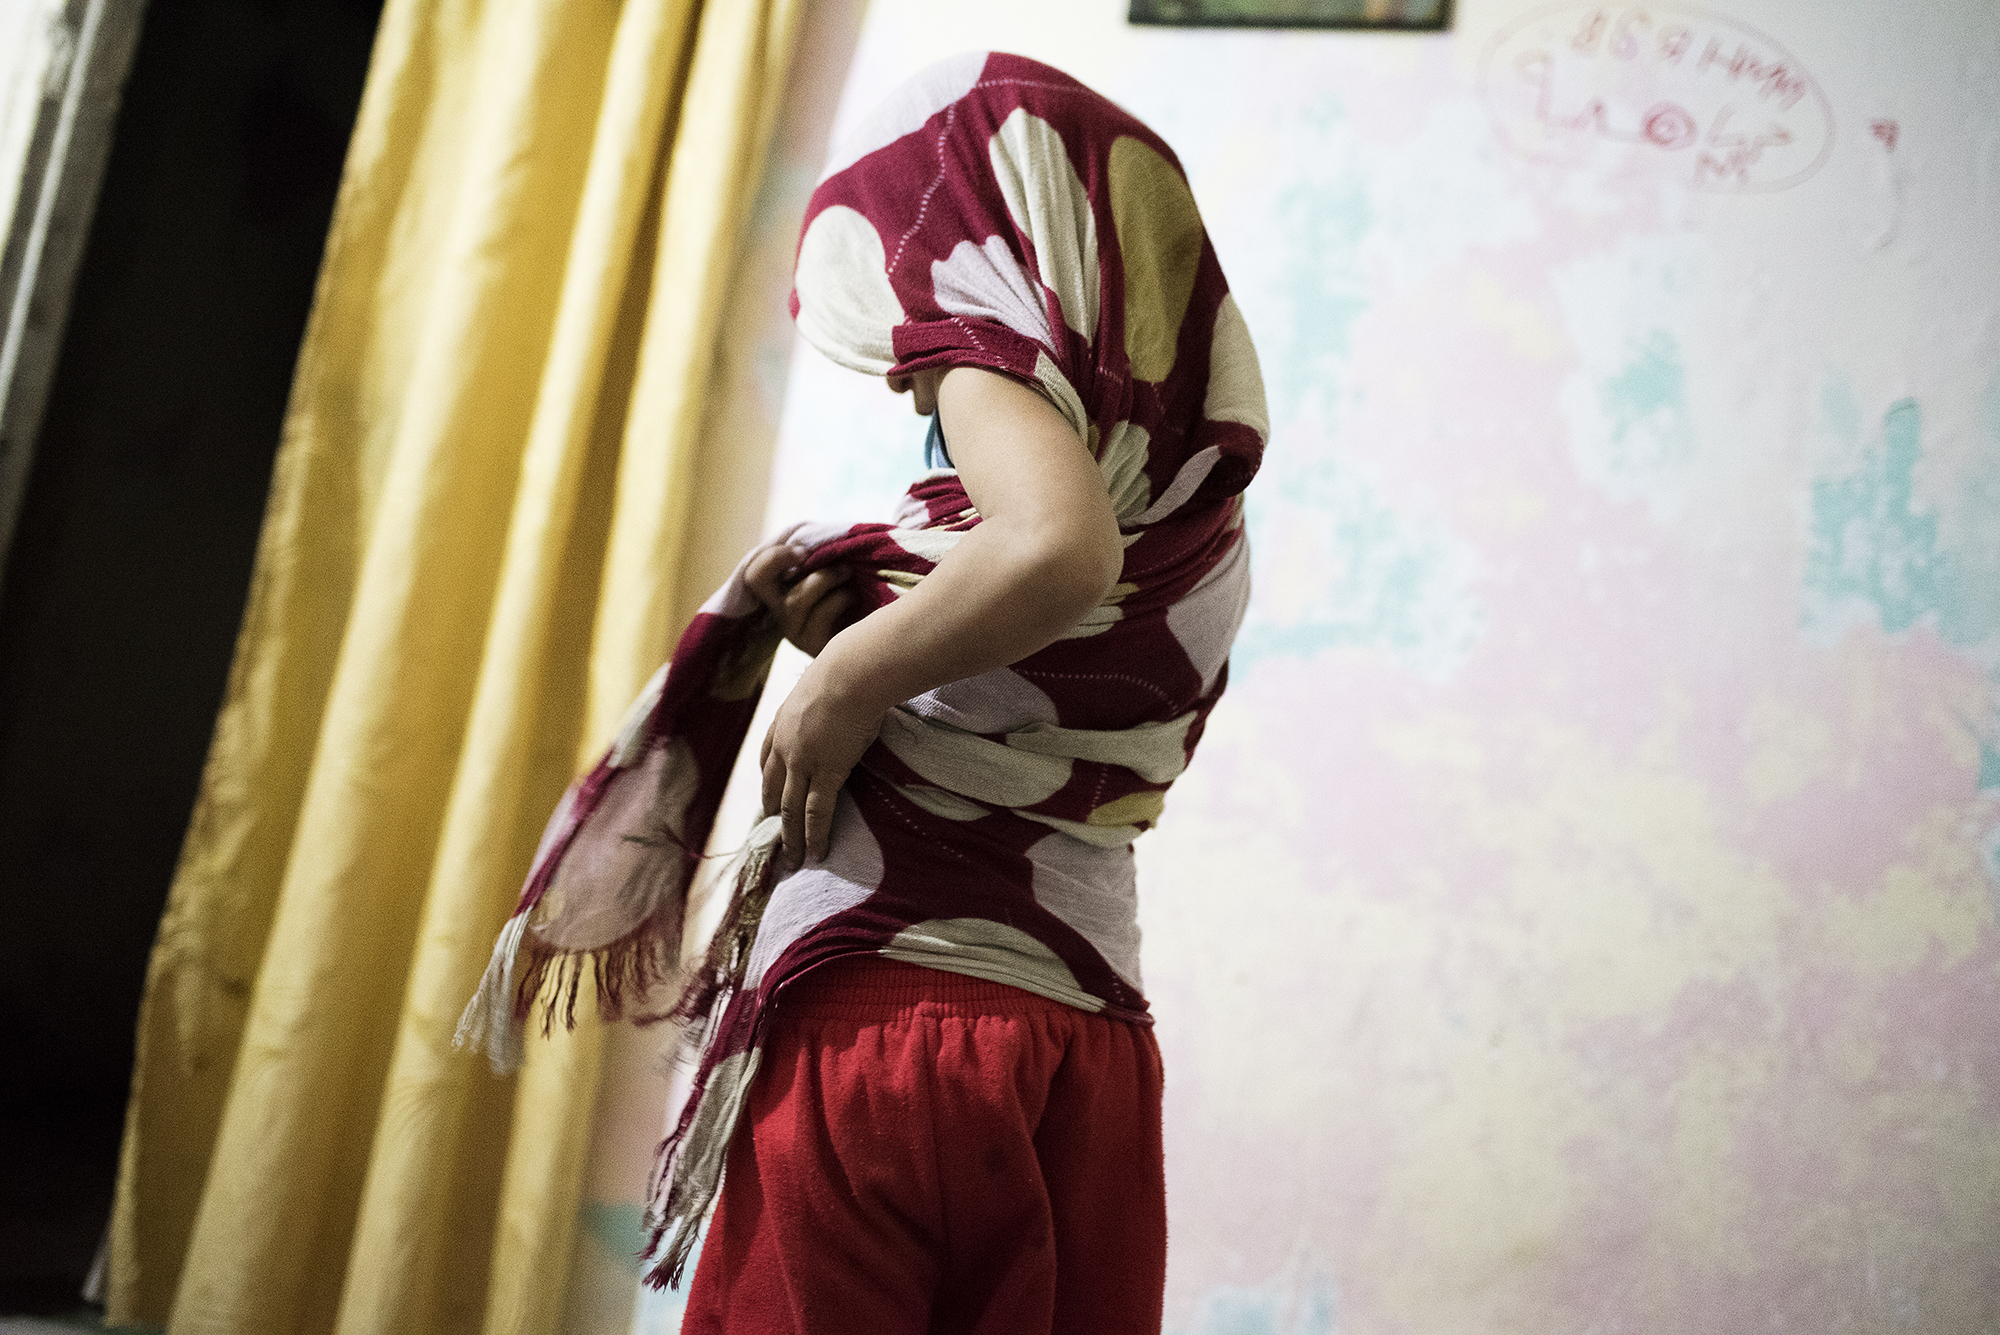 A girl from the western Syrian city of Hama adjusts a scarf in an apartment in the outskirts of Beirut, Lebanon, where she and her mother fled following violence in Hama in 2012.